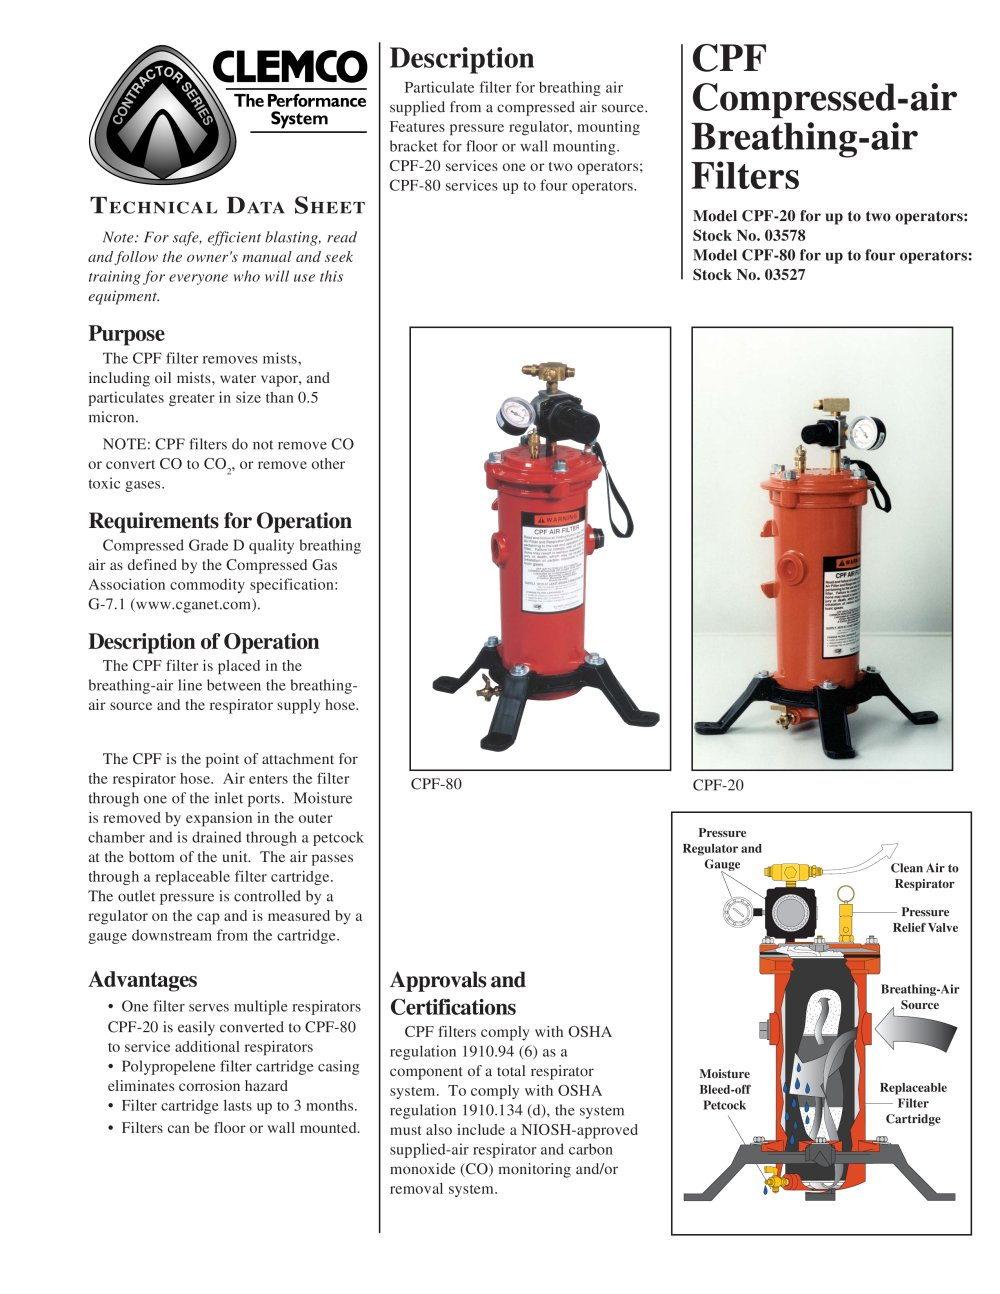 Clemco Industries Blast Cabinets Cpf 20 And 80 Air Filter Rev B Clemco Industries Pdf